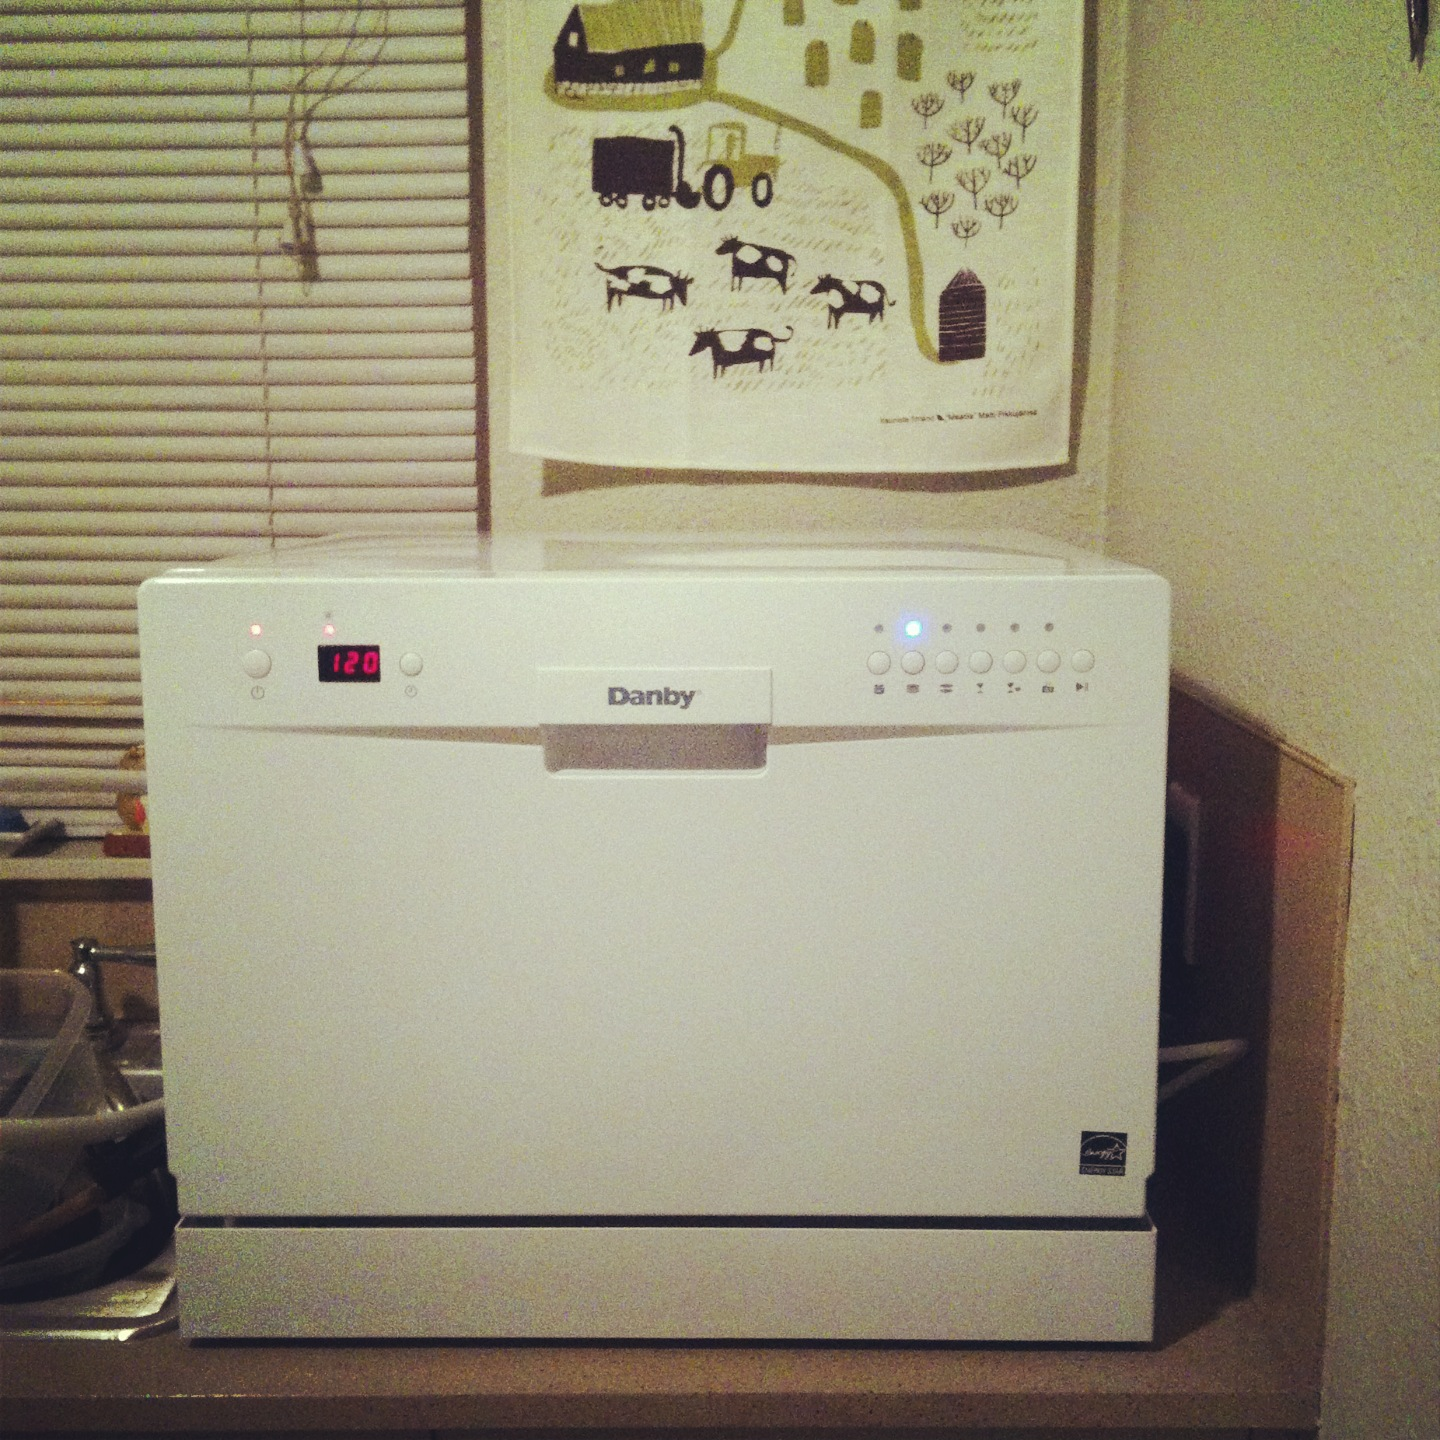 Danby+Countertop+Dishwasher ... love our danby countertop dishwasher ...